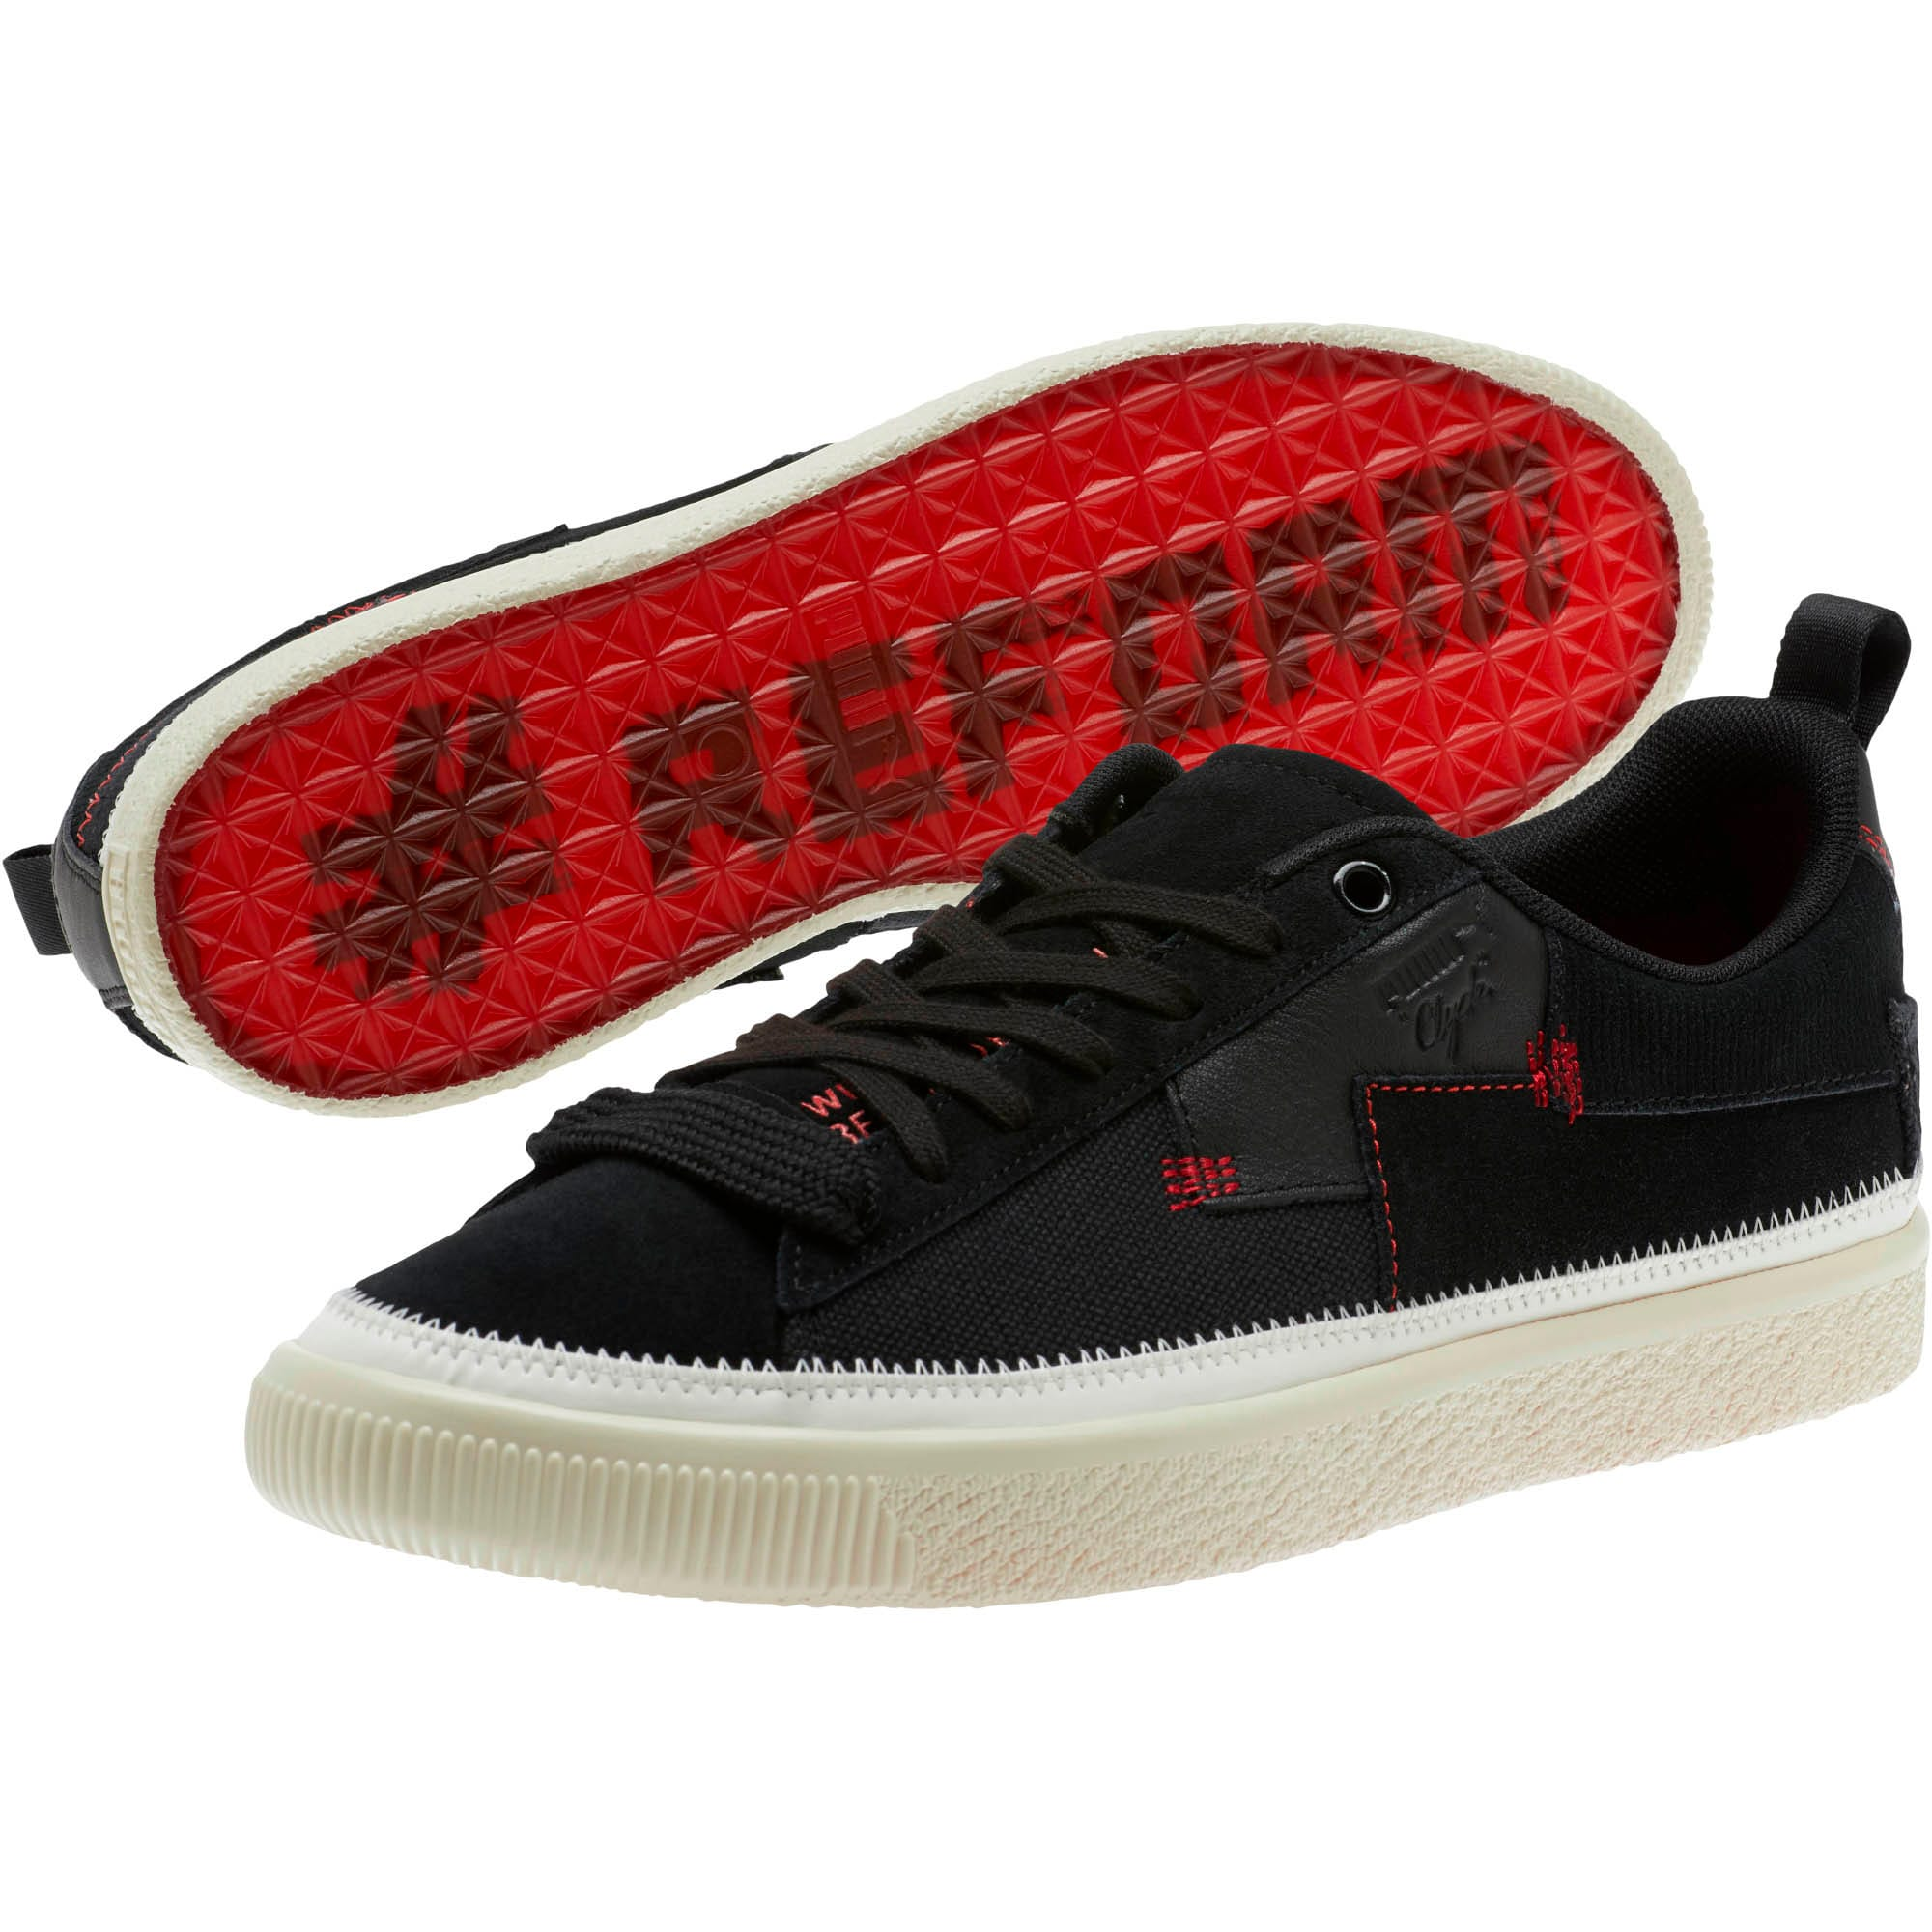 Thumbnail 2 of Clyde #REFORM Sneakers, Black-Whisper White- Red, medium